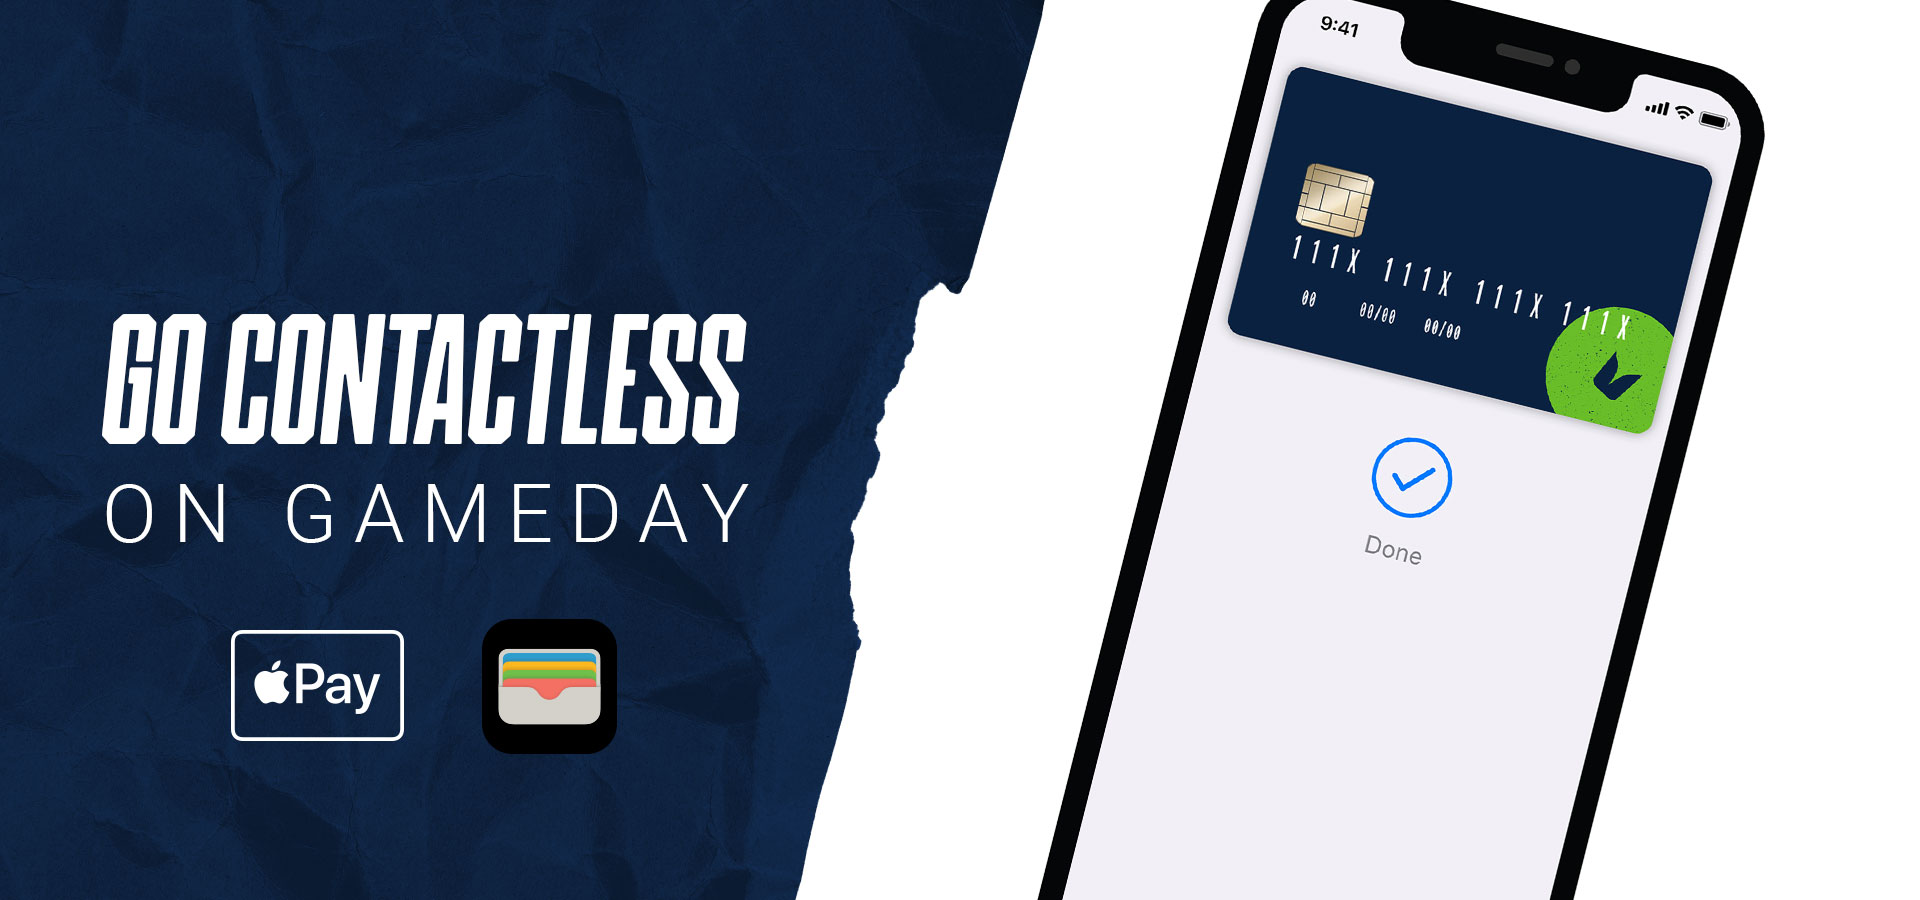 Go contactless on gameday with Apple Pay